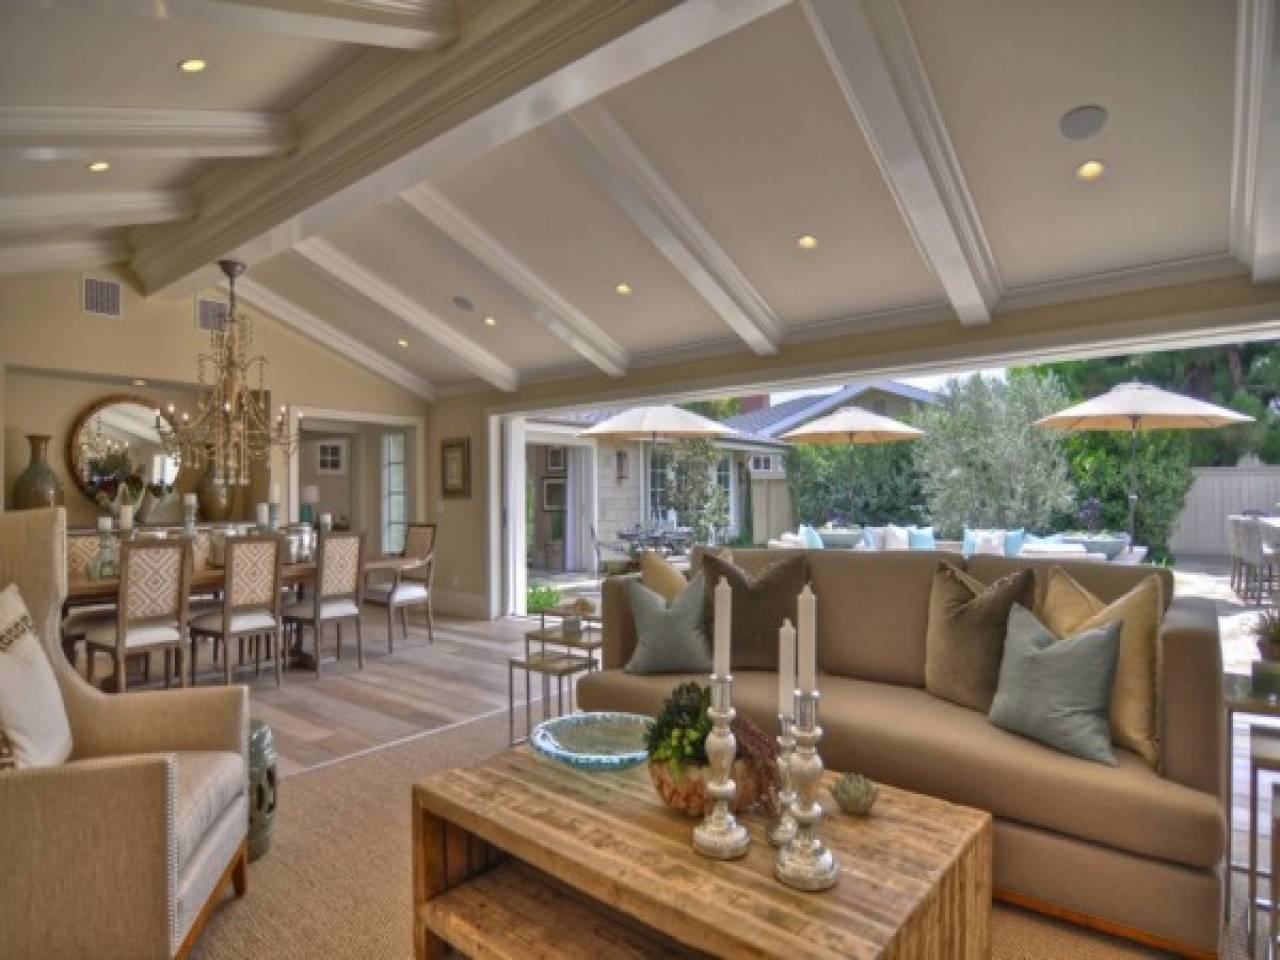 Interior Decoration Small House Vaulted Ceilings Open